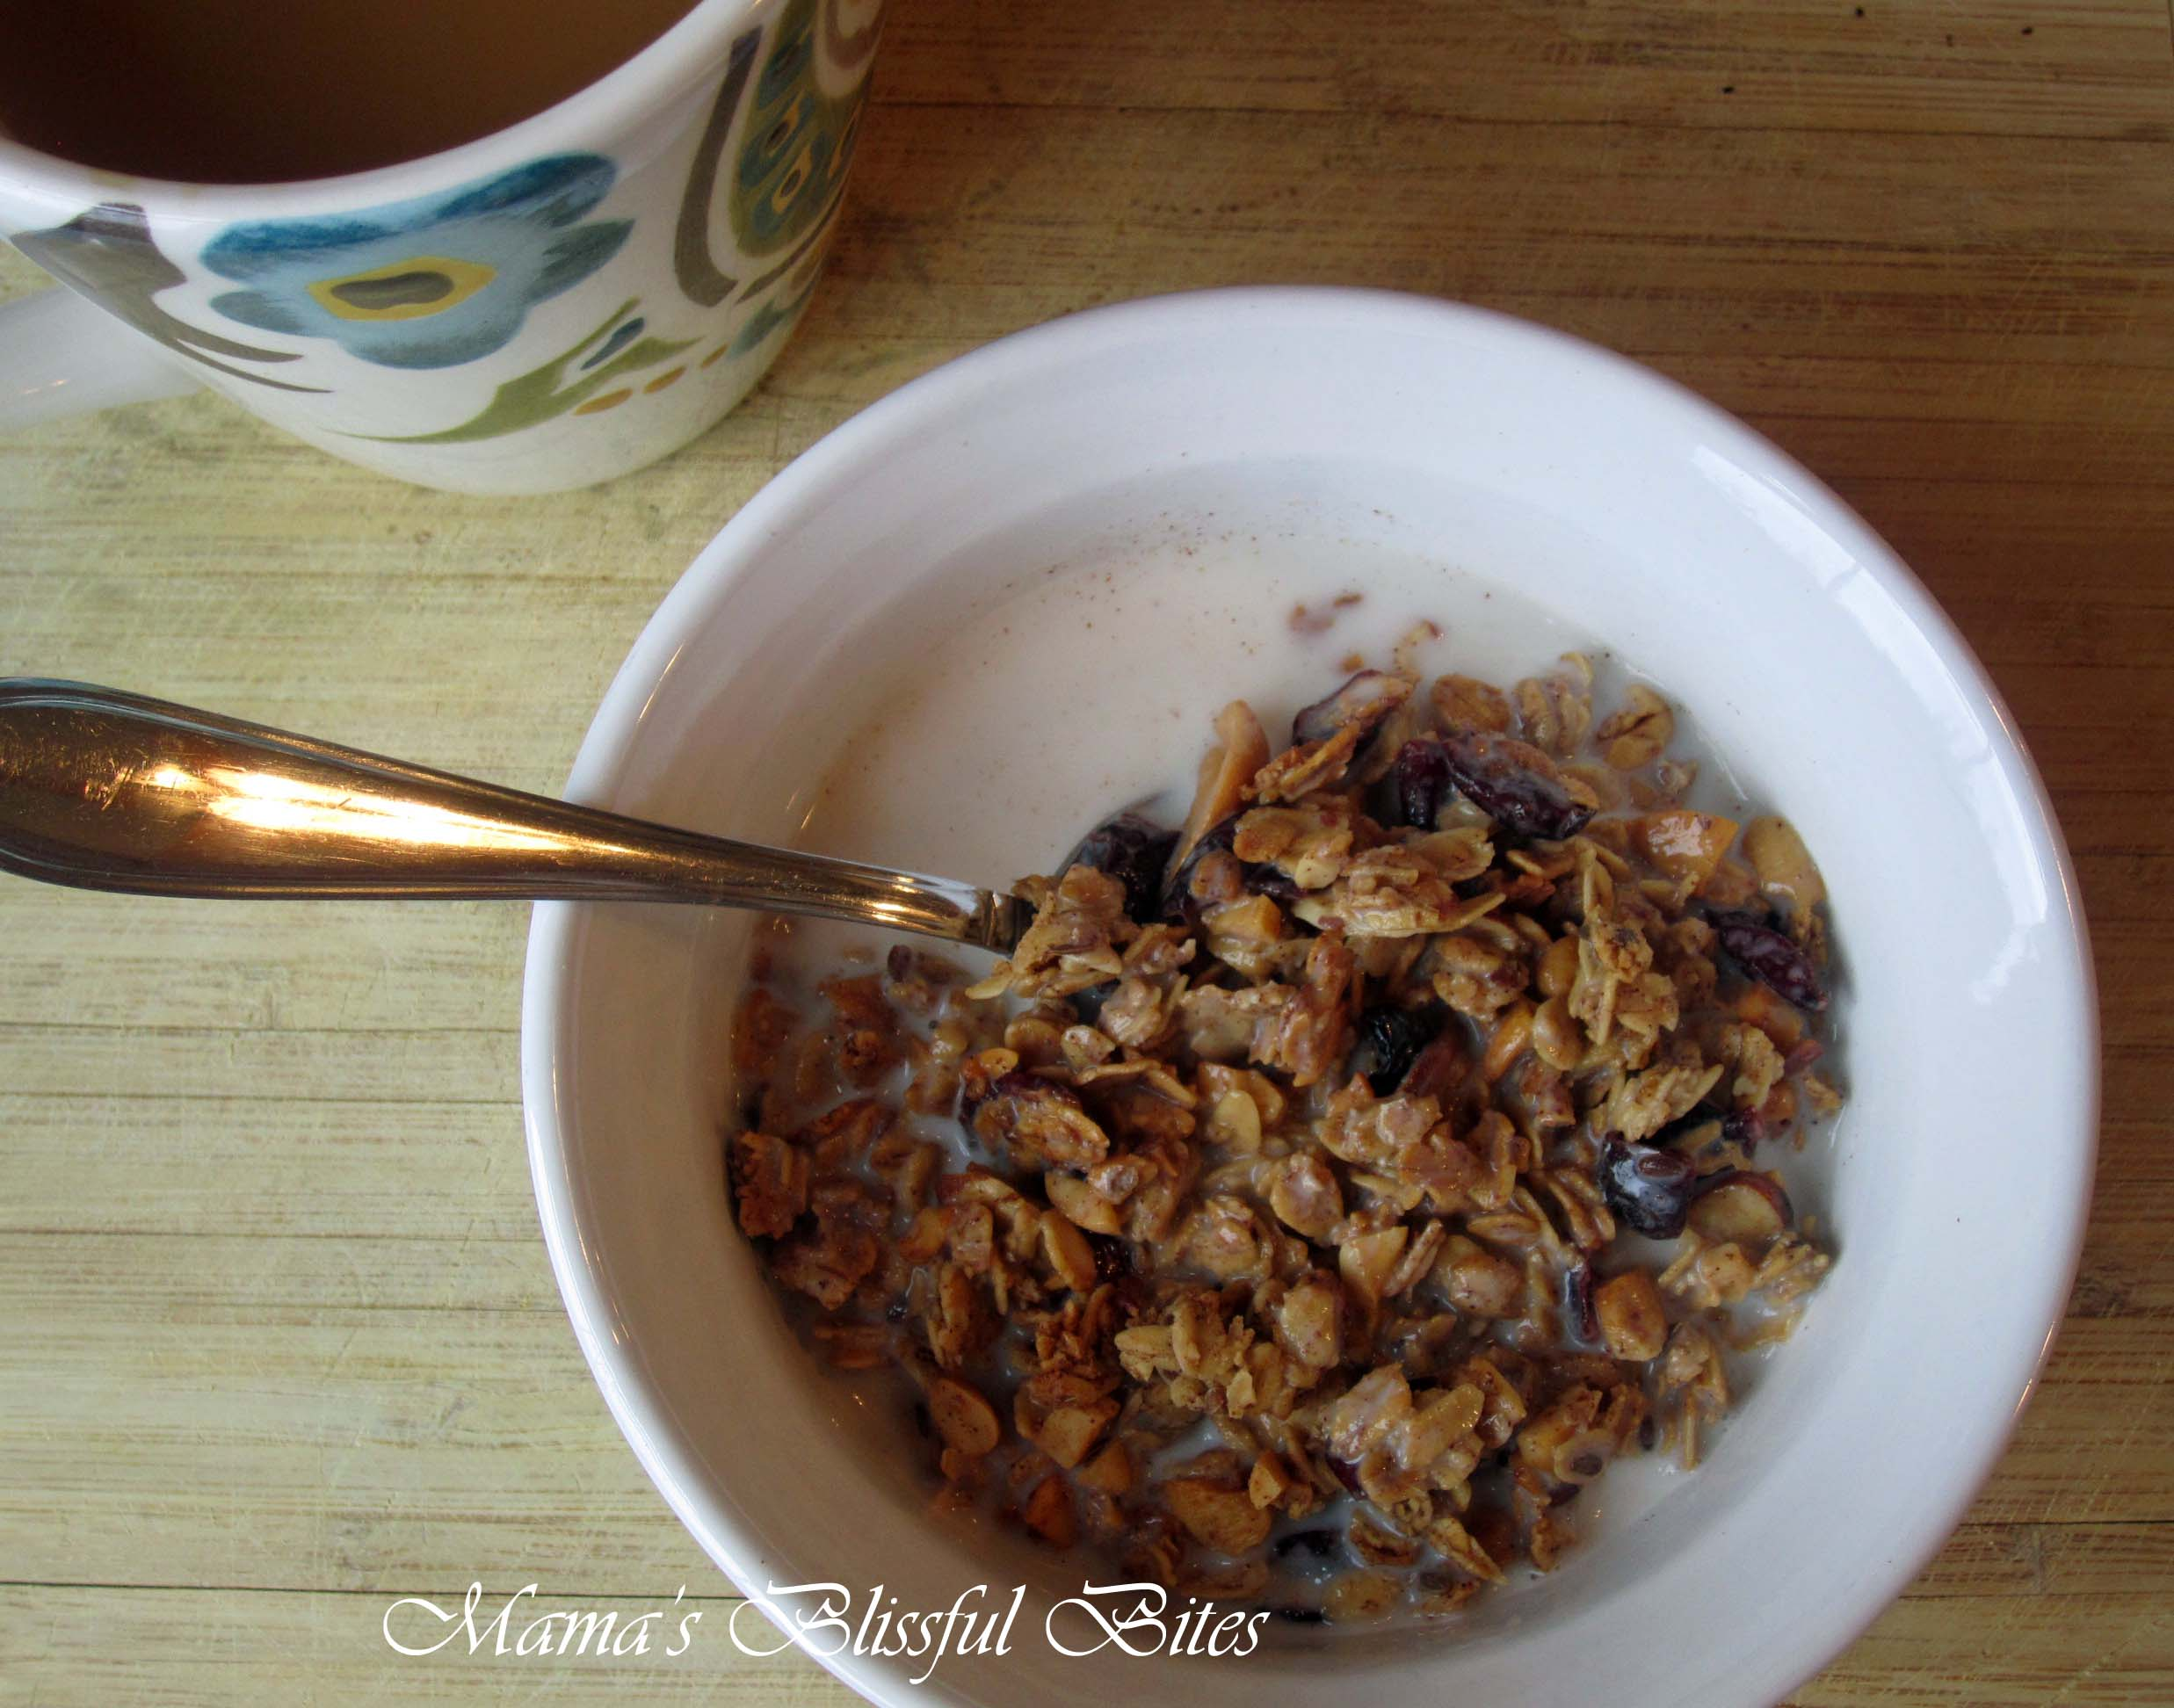 Cherry Oat Cereal bowl